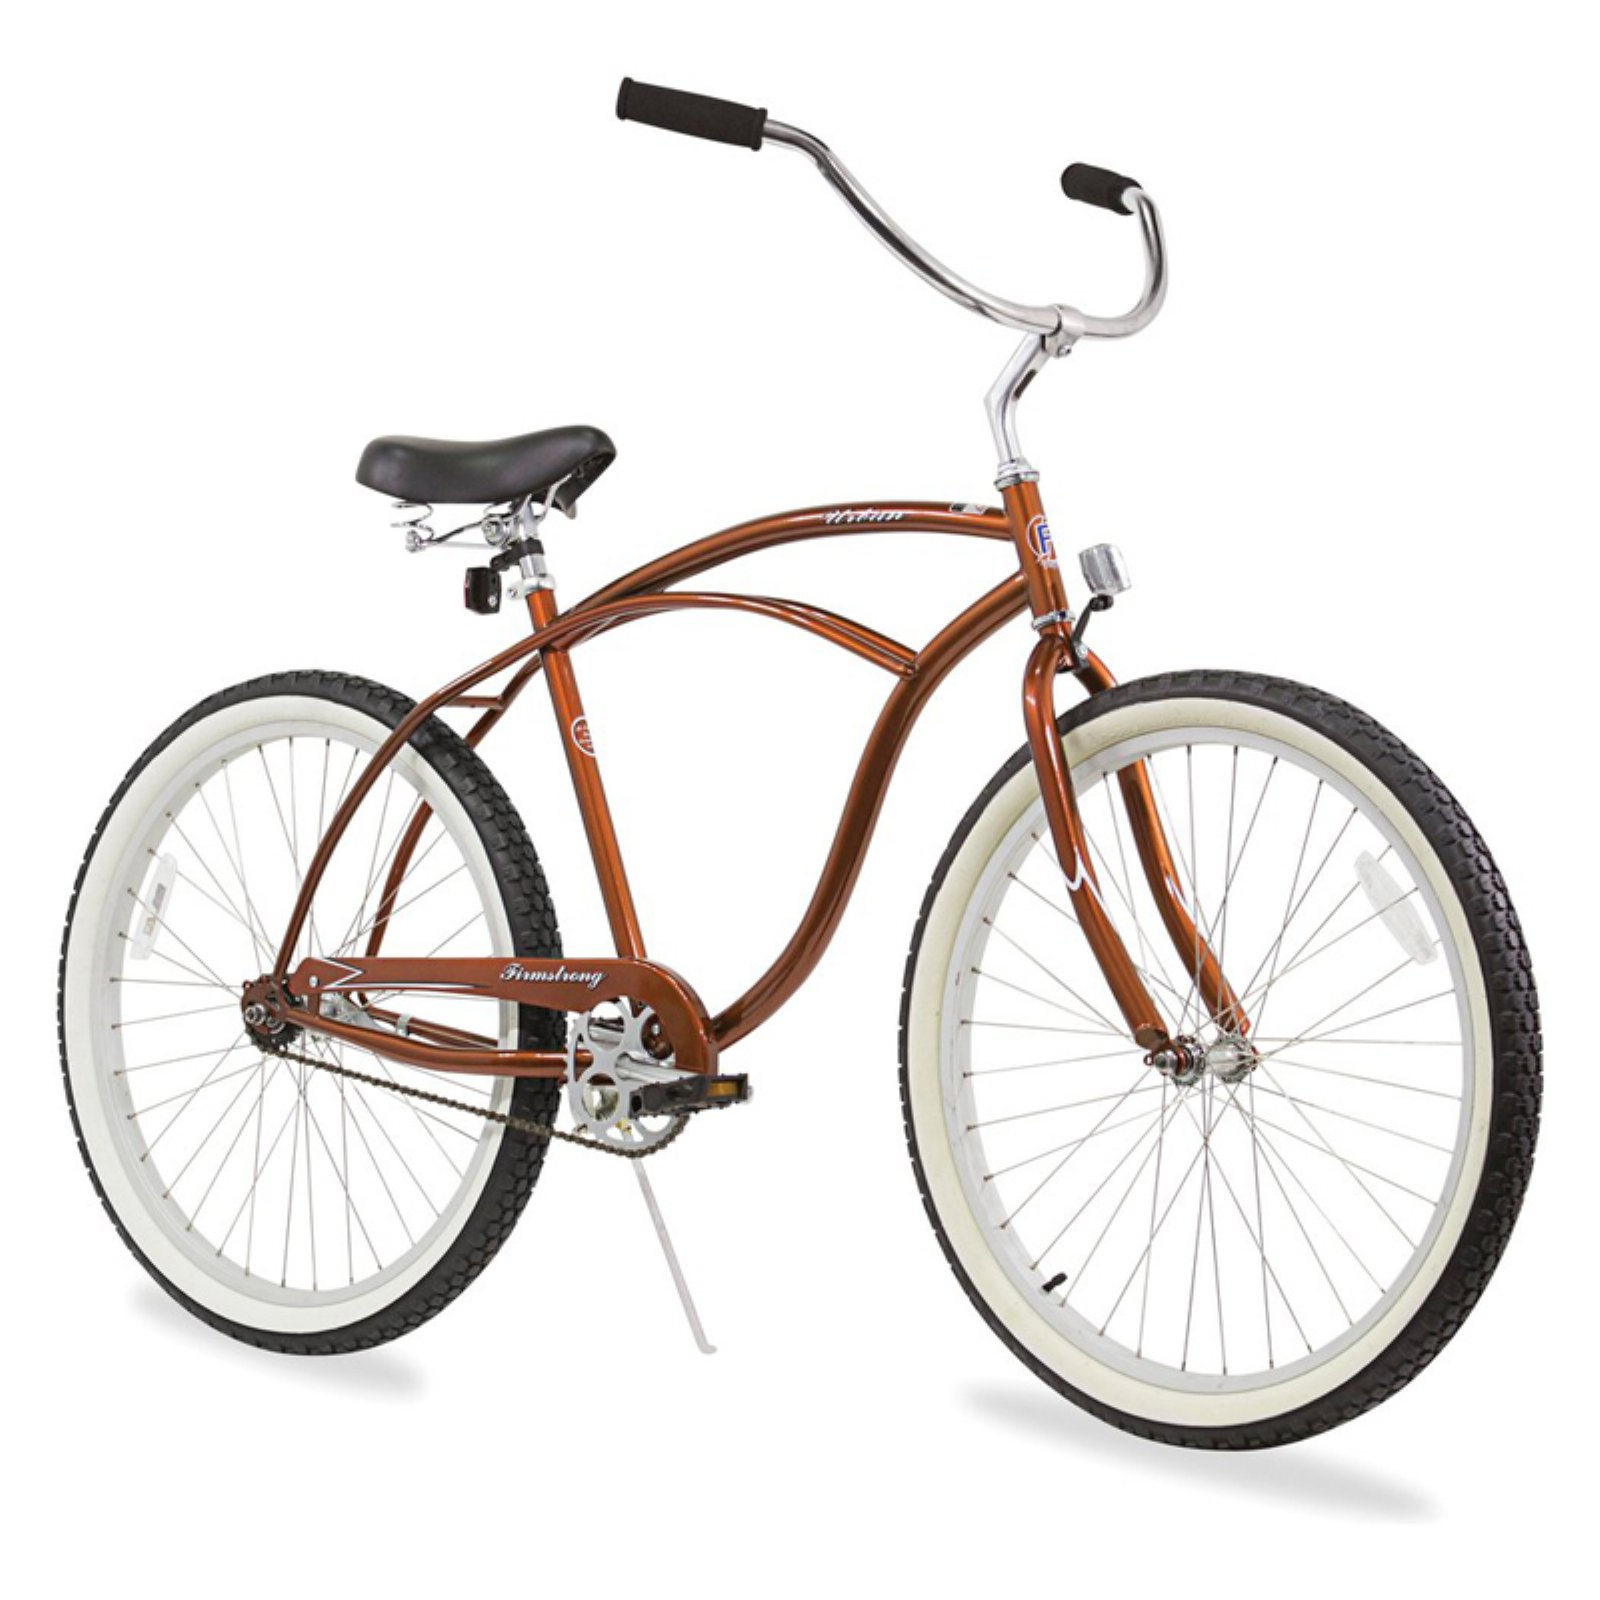 "Firmstrong 26"" Men's Urban Speed Beach Cruiser Bicycle, 1, 3 and 7 Speed"